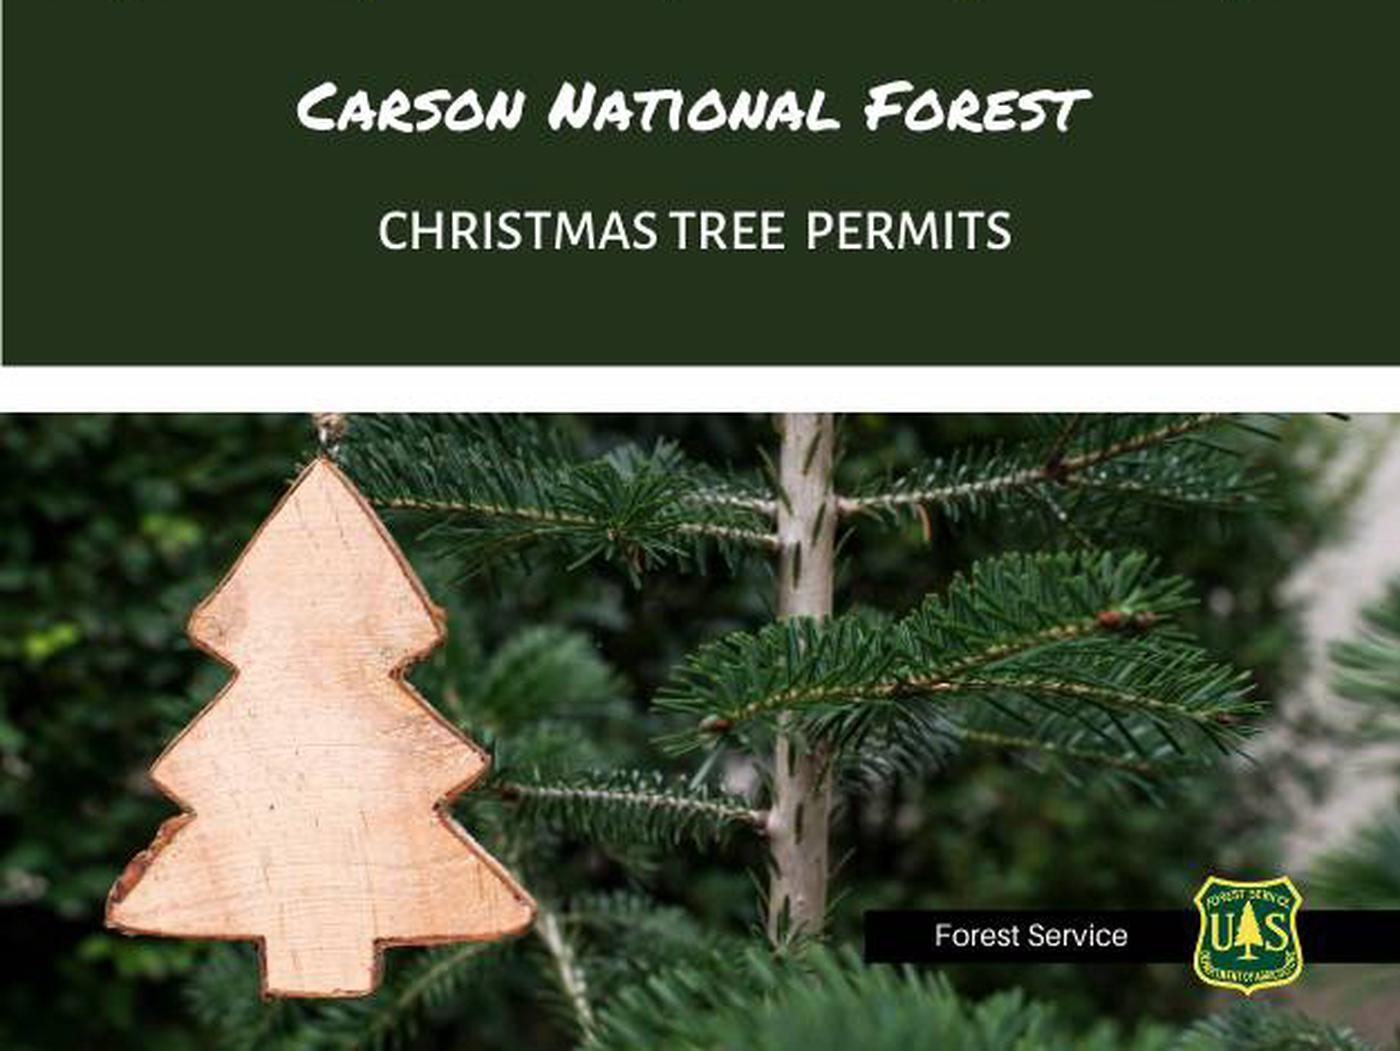 Alt Text: Carson National Forest – Christmas Tree Permit. Wooden Christmas tree ornament hanging on a Christmas tree. USDA Forest Service shield. Caption: Cut down your own Christmas tree and bring home a story! Learn more on how to get  your Christmas Tree Permit and important steps to know before you go by visiting www.recreation.gov/tree-permits.